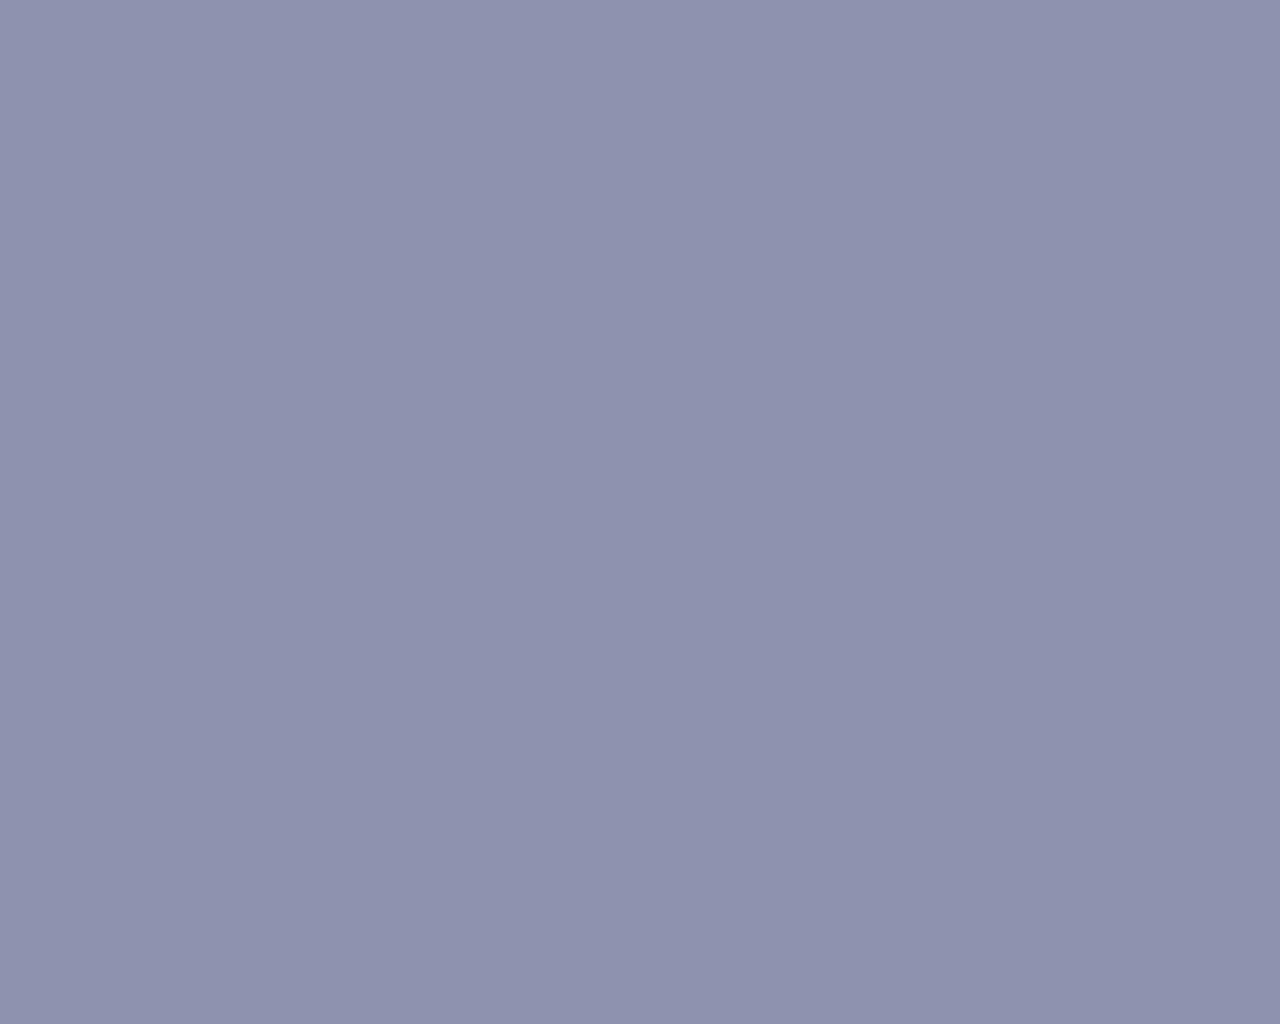 1280x1024 Cool Grey Solid Color Background